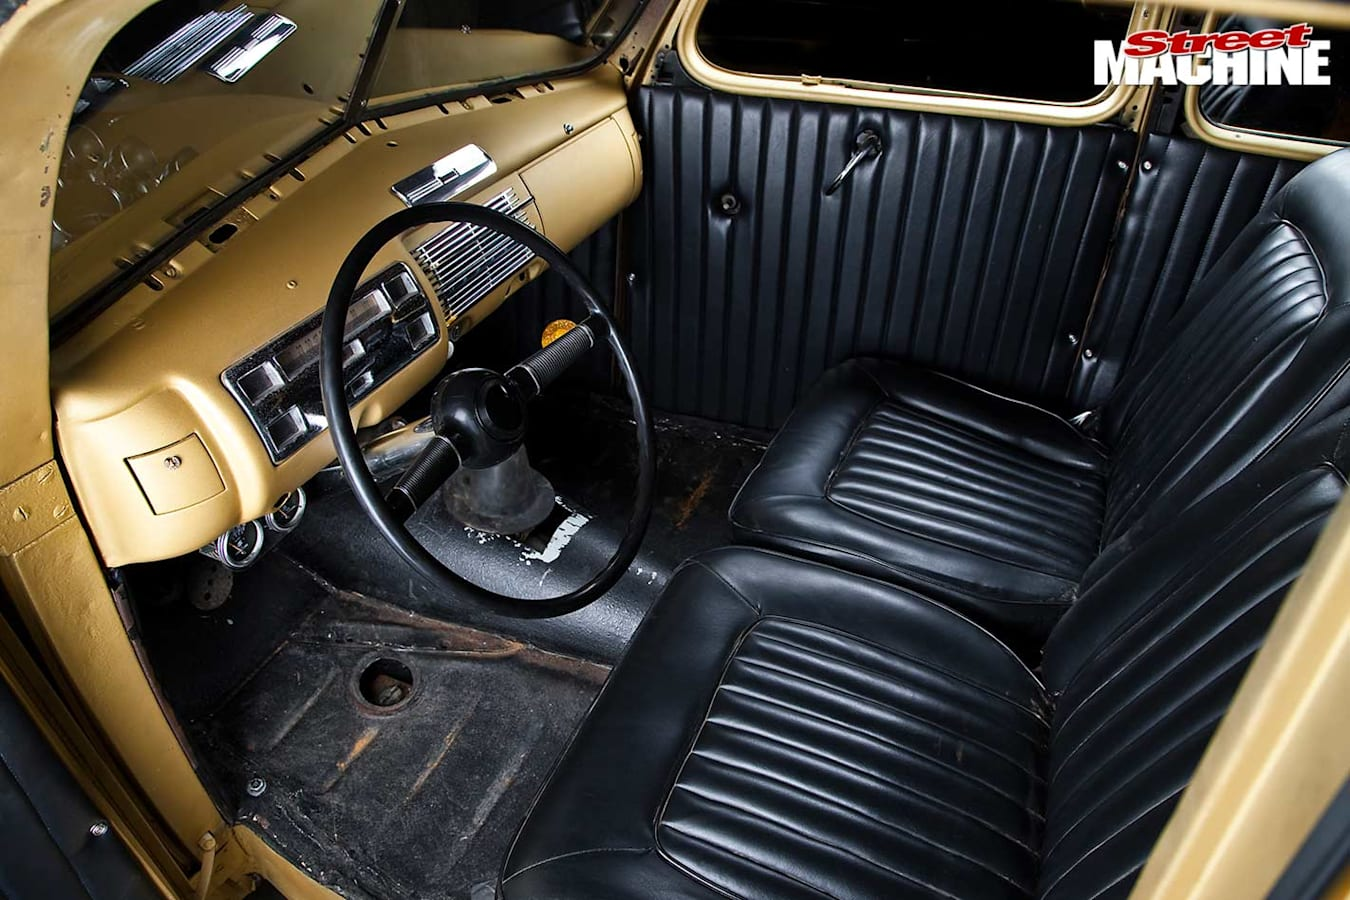 1940 Ford coupe interior